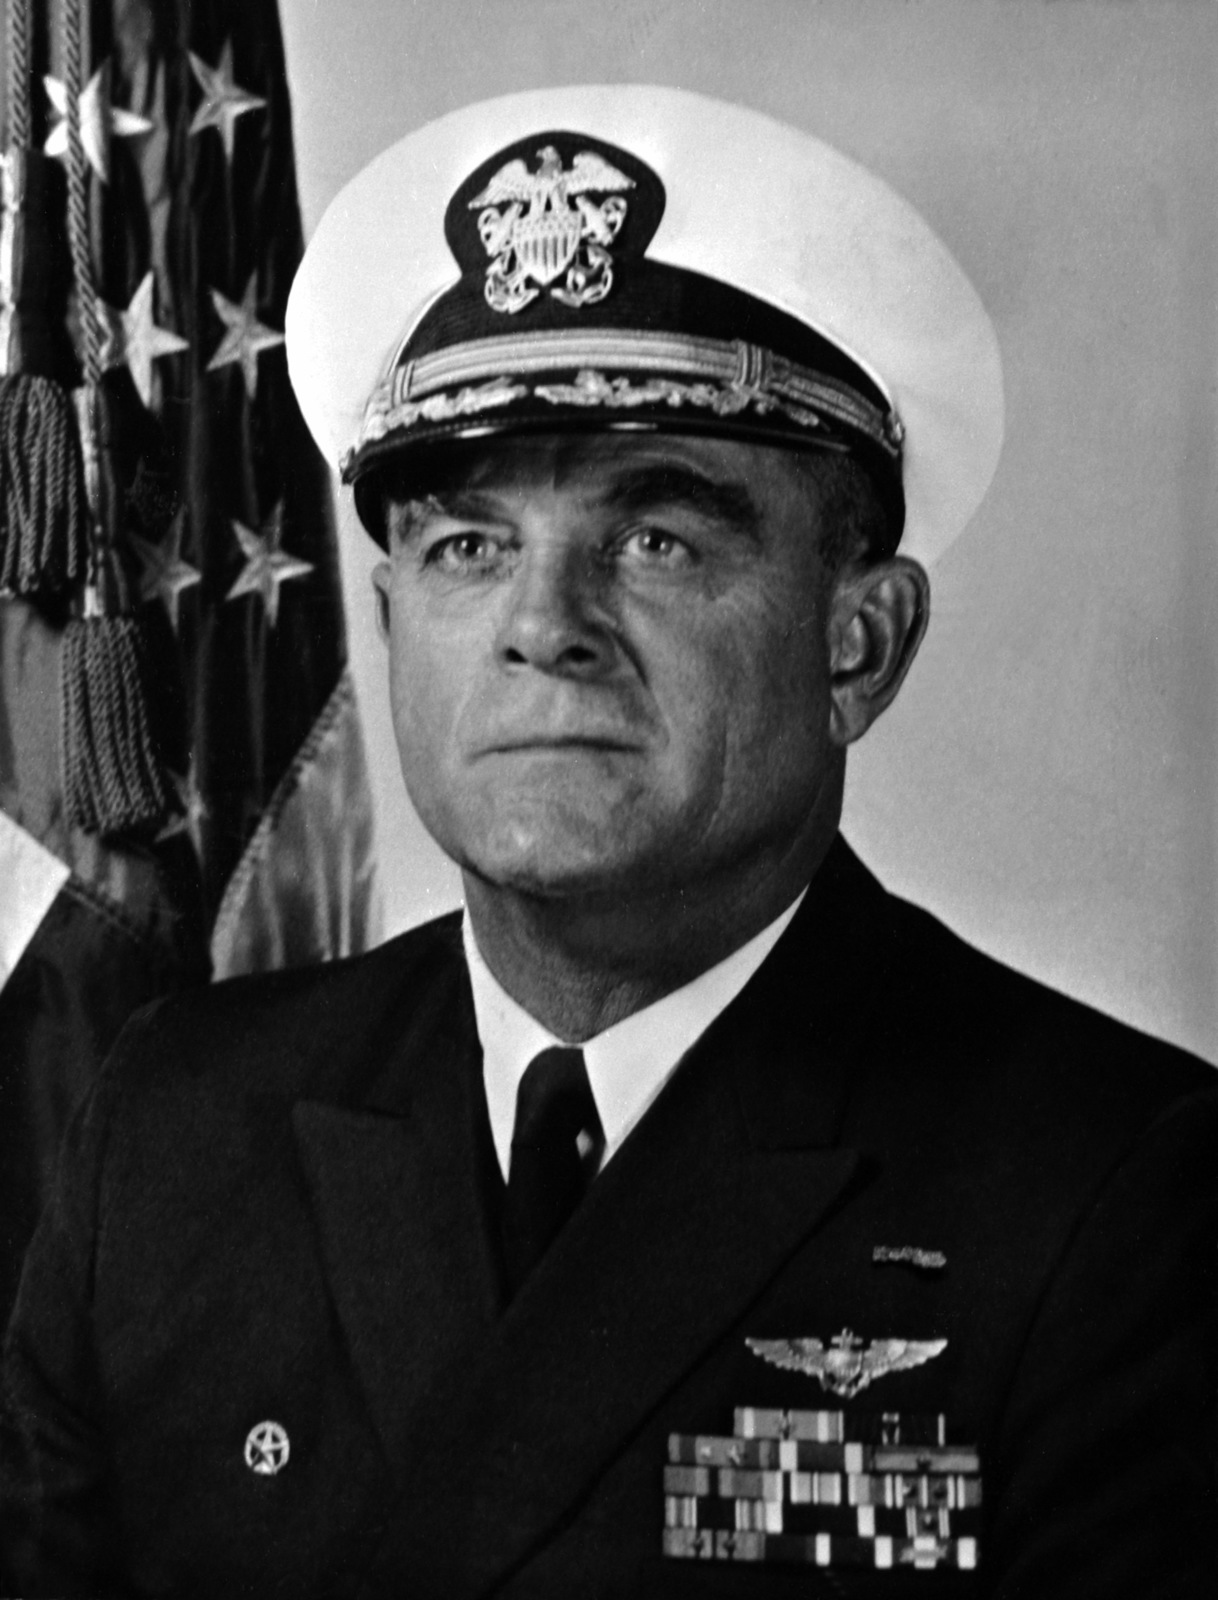 capt  joseph l  coleman  usn  covered  co  uss ranger  cv-61   1970-1971